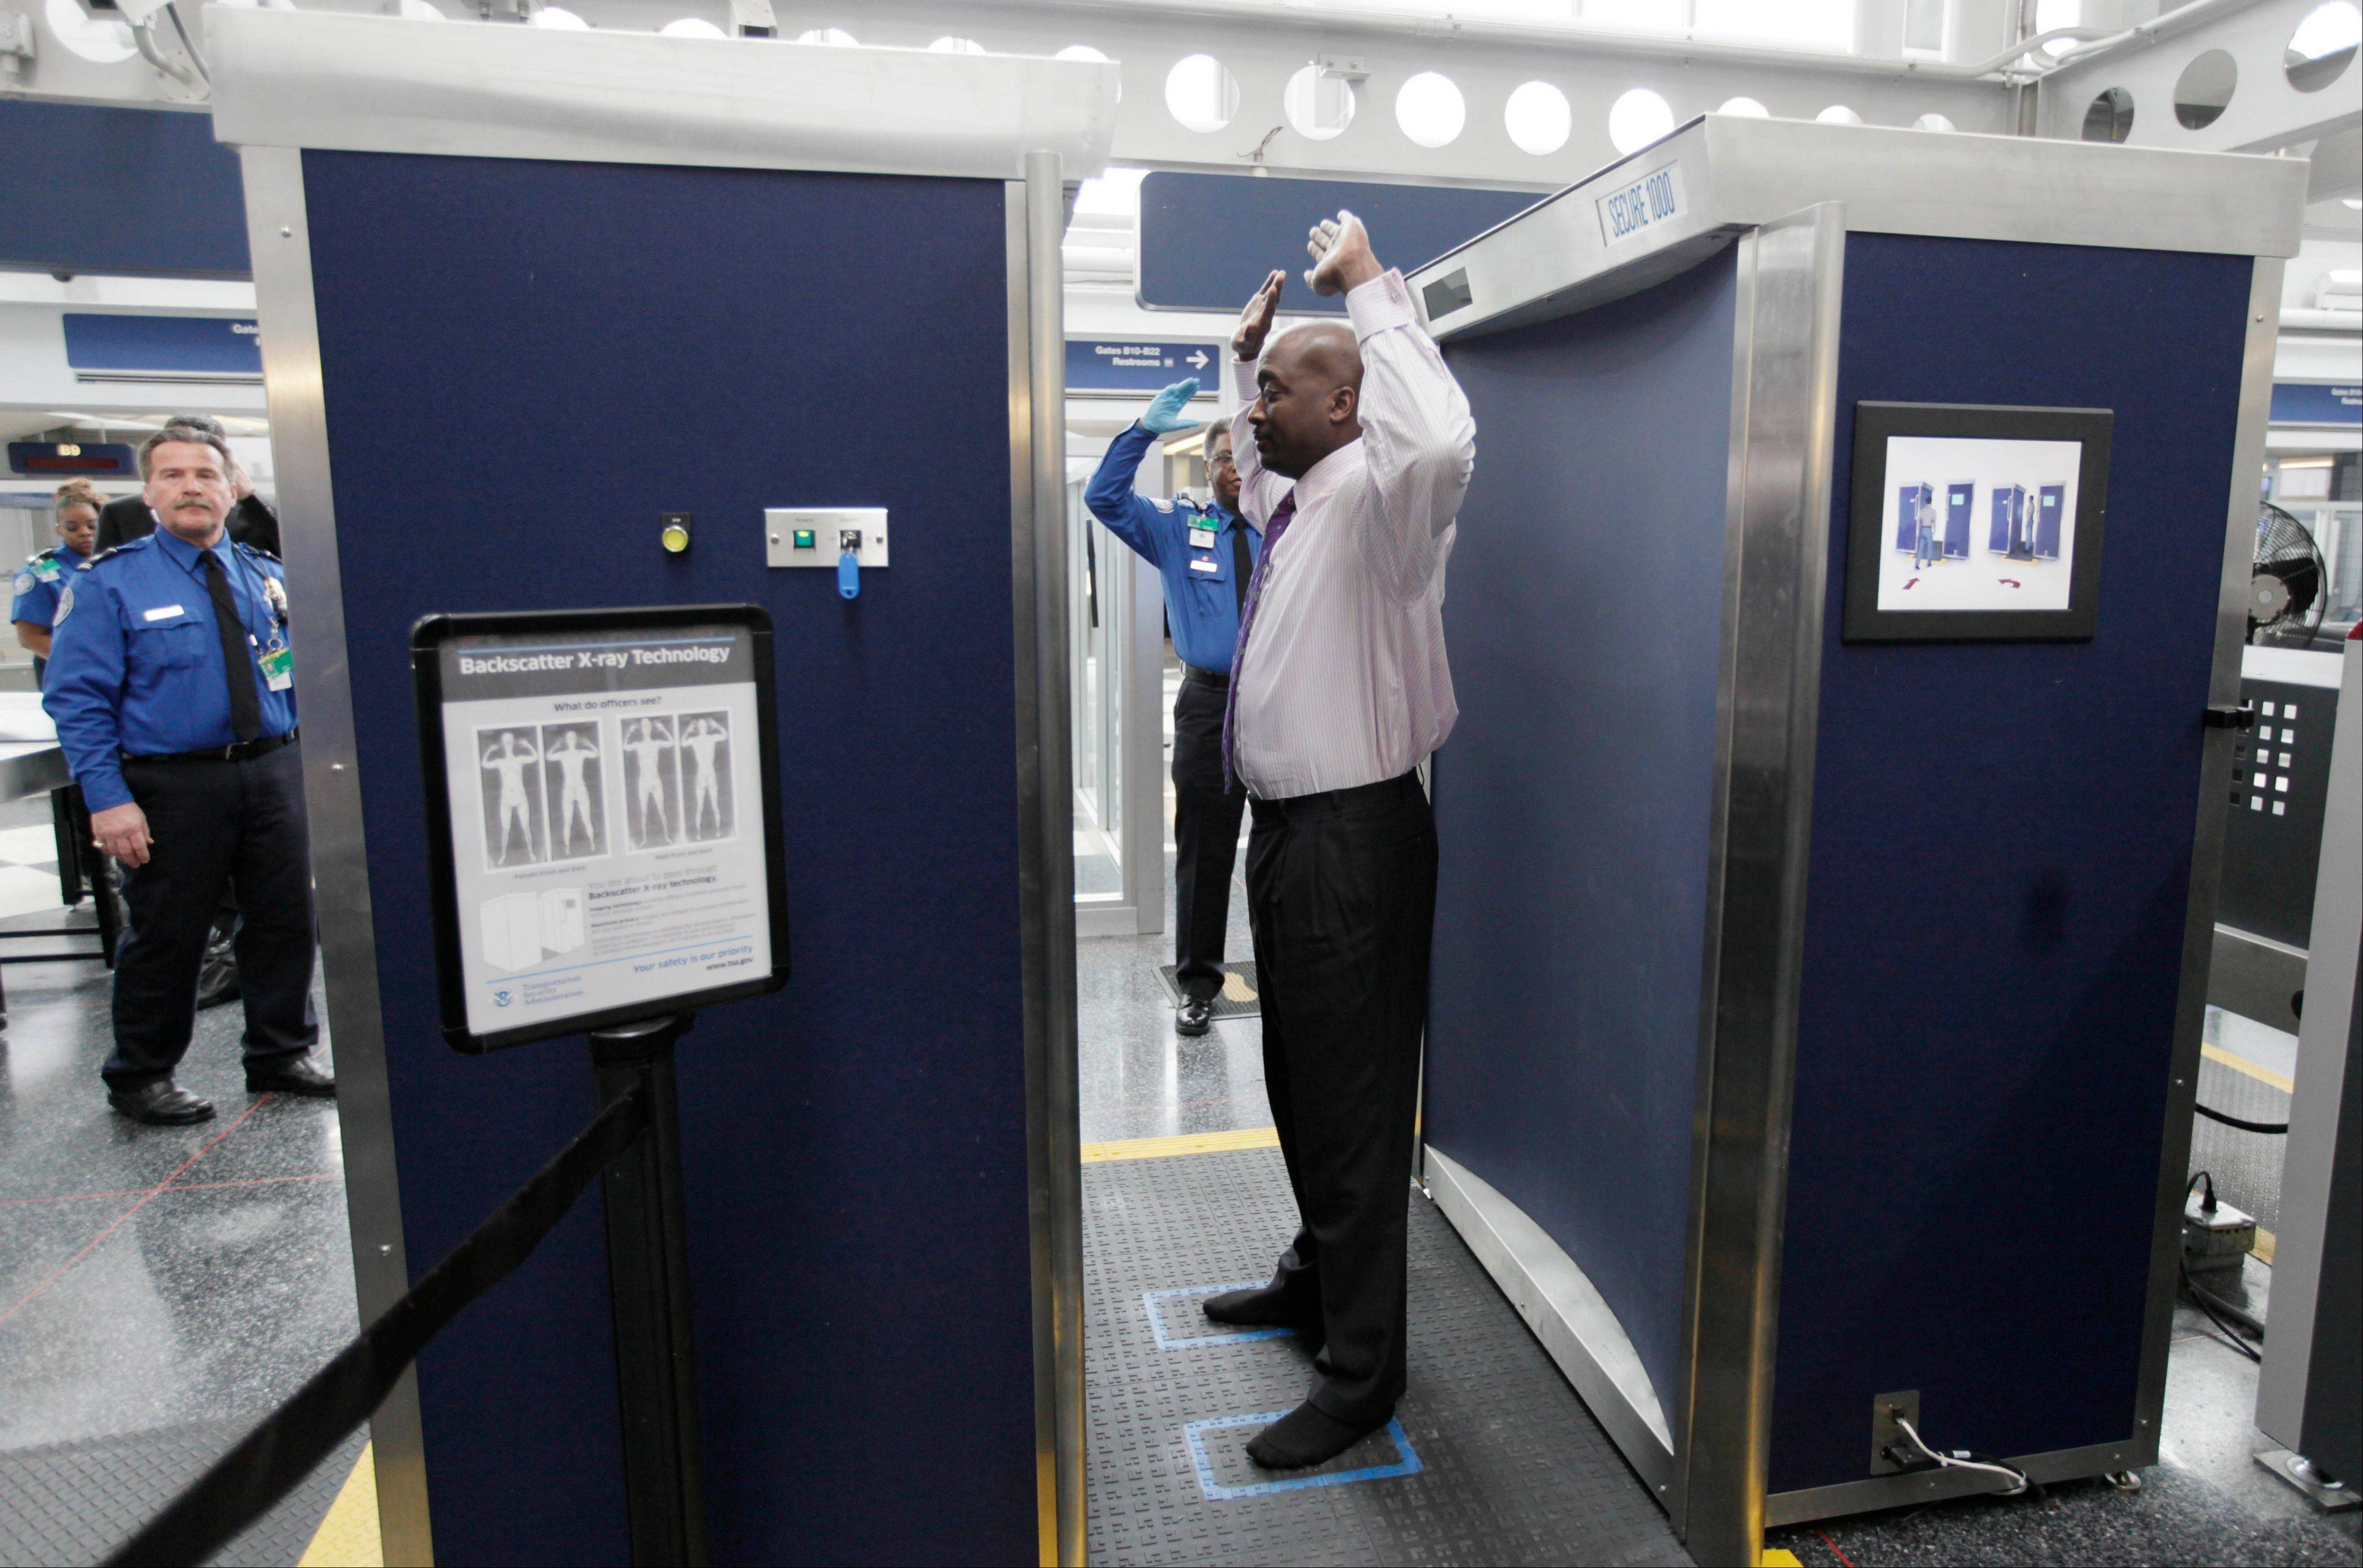 Volunteers pass through the first full body scanner, which uses backscatter technology, installed at O'Hare International Airport.